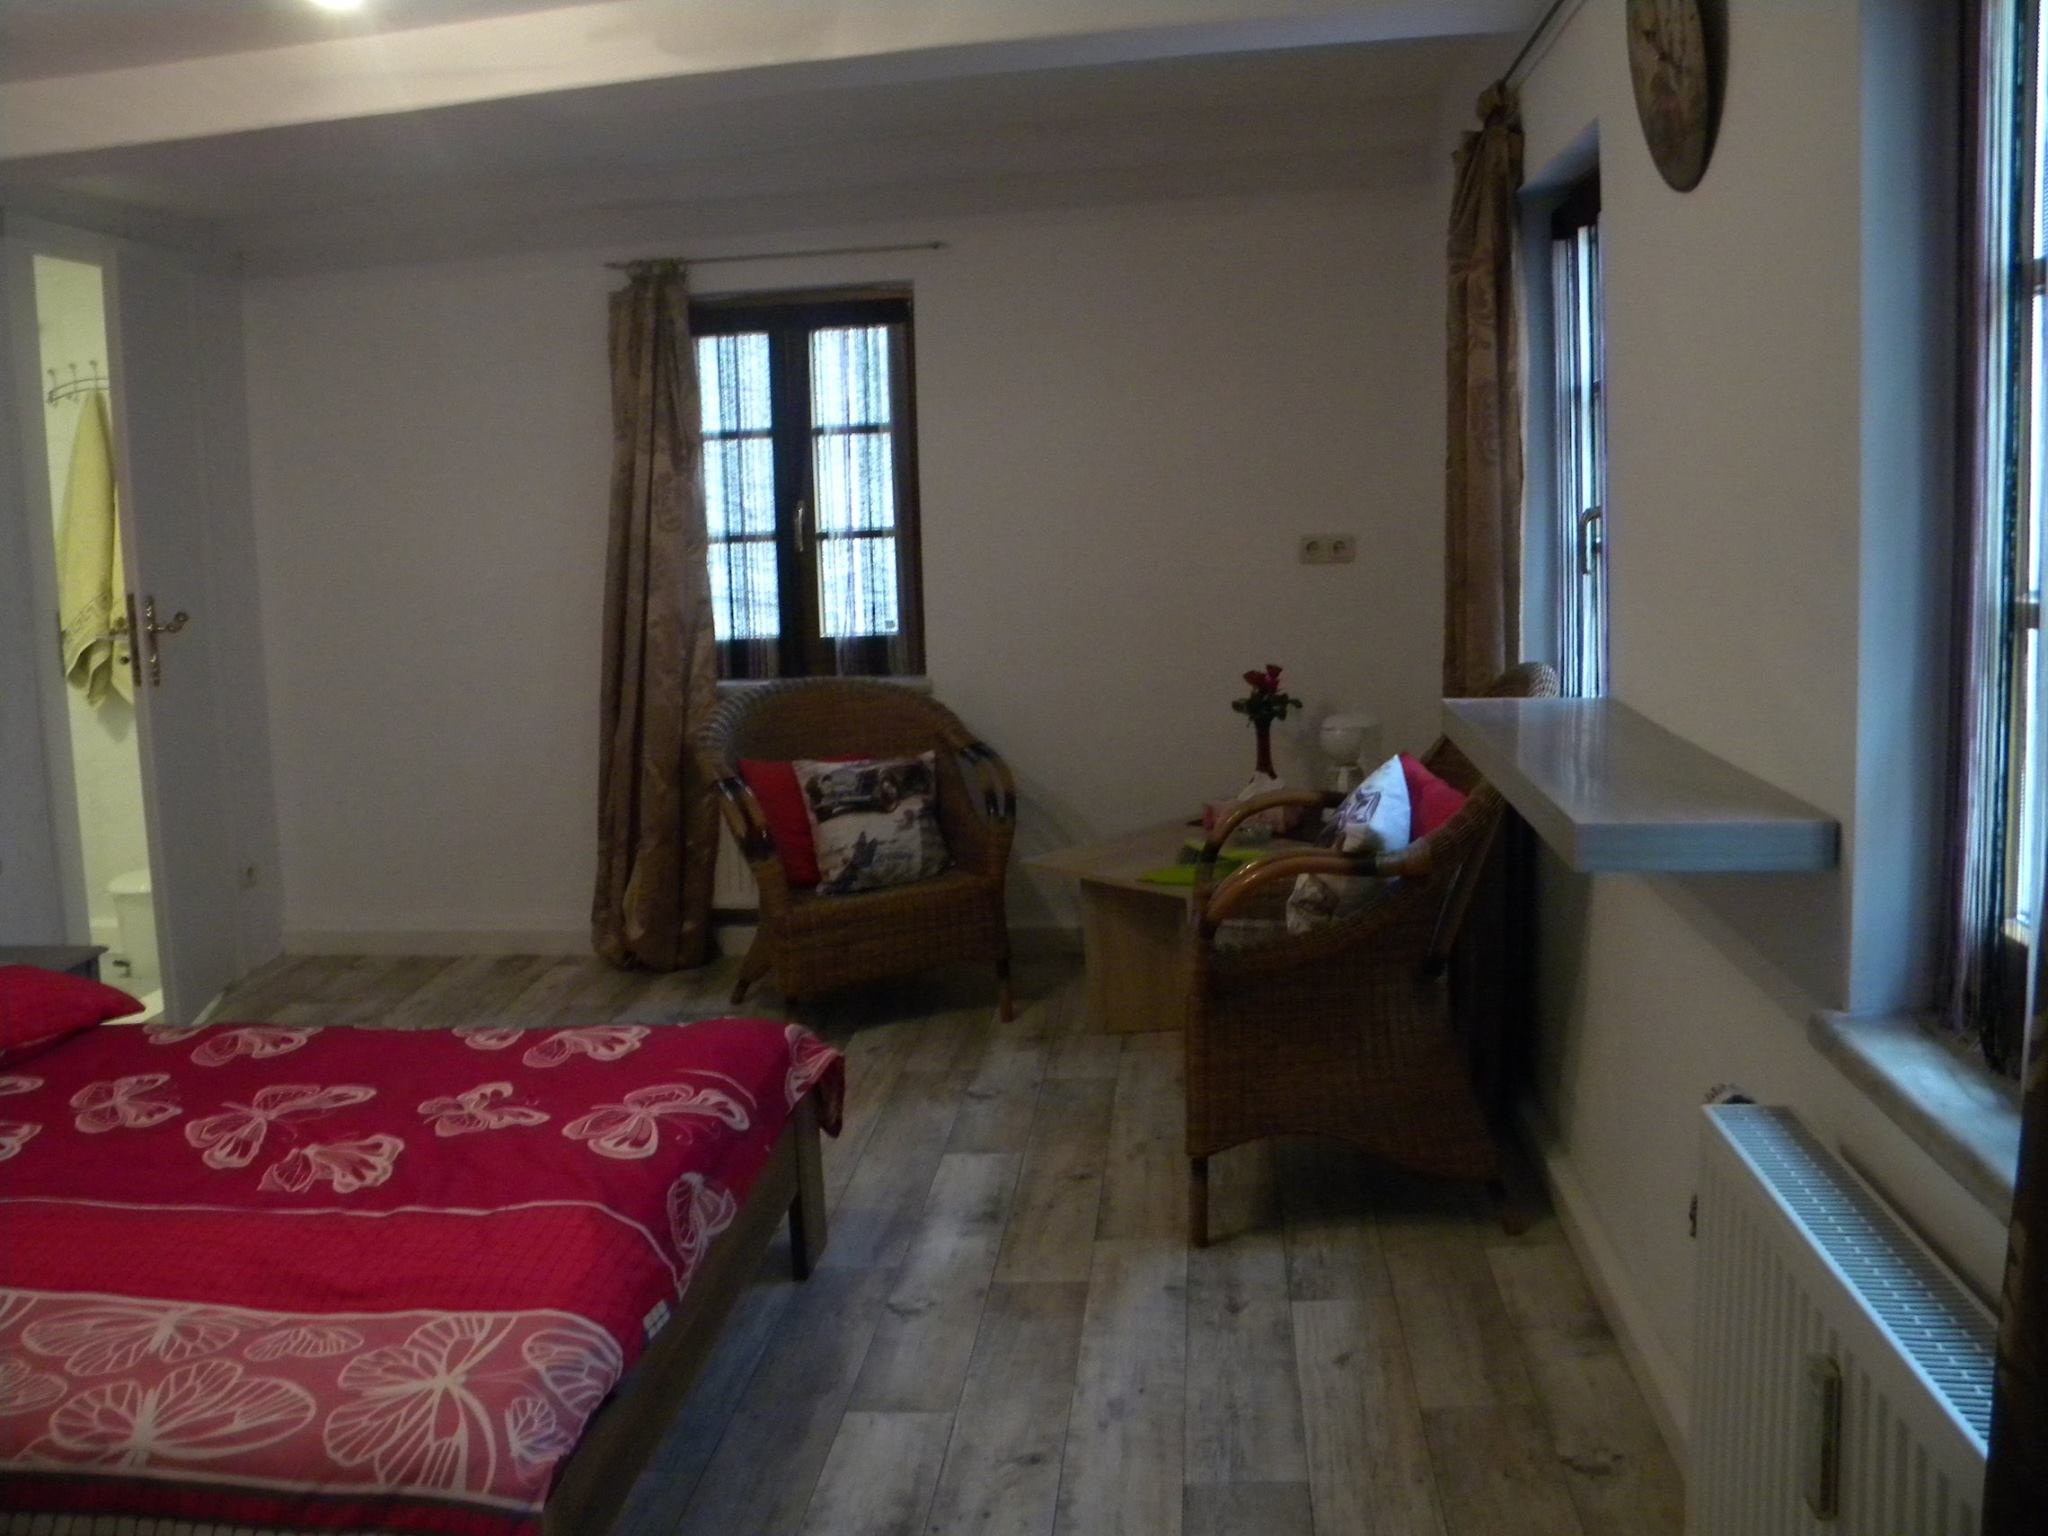 Kamers bb ferienhaus bed and breakfast hans en hannieb b hans hannie - Romantische kamer ...